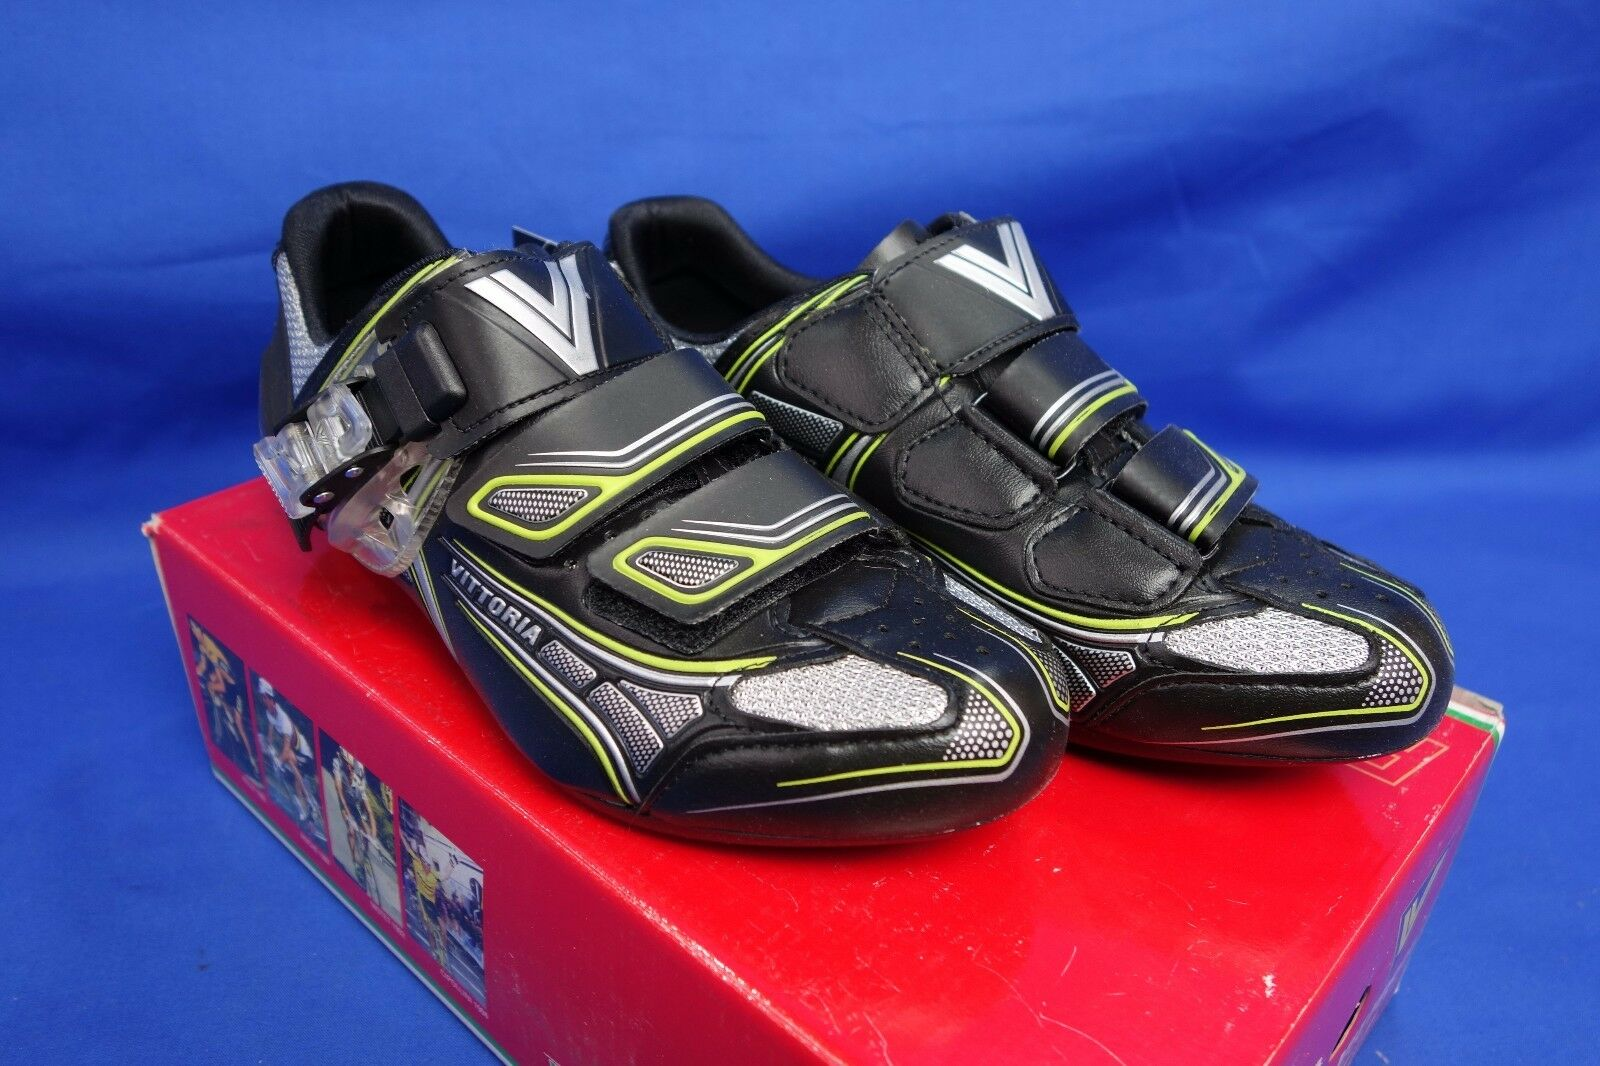 New Vittoria Brave Road Bike Cycling shoes, 3-Bolt, US 6.5  150 Retail